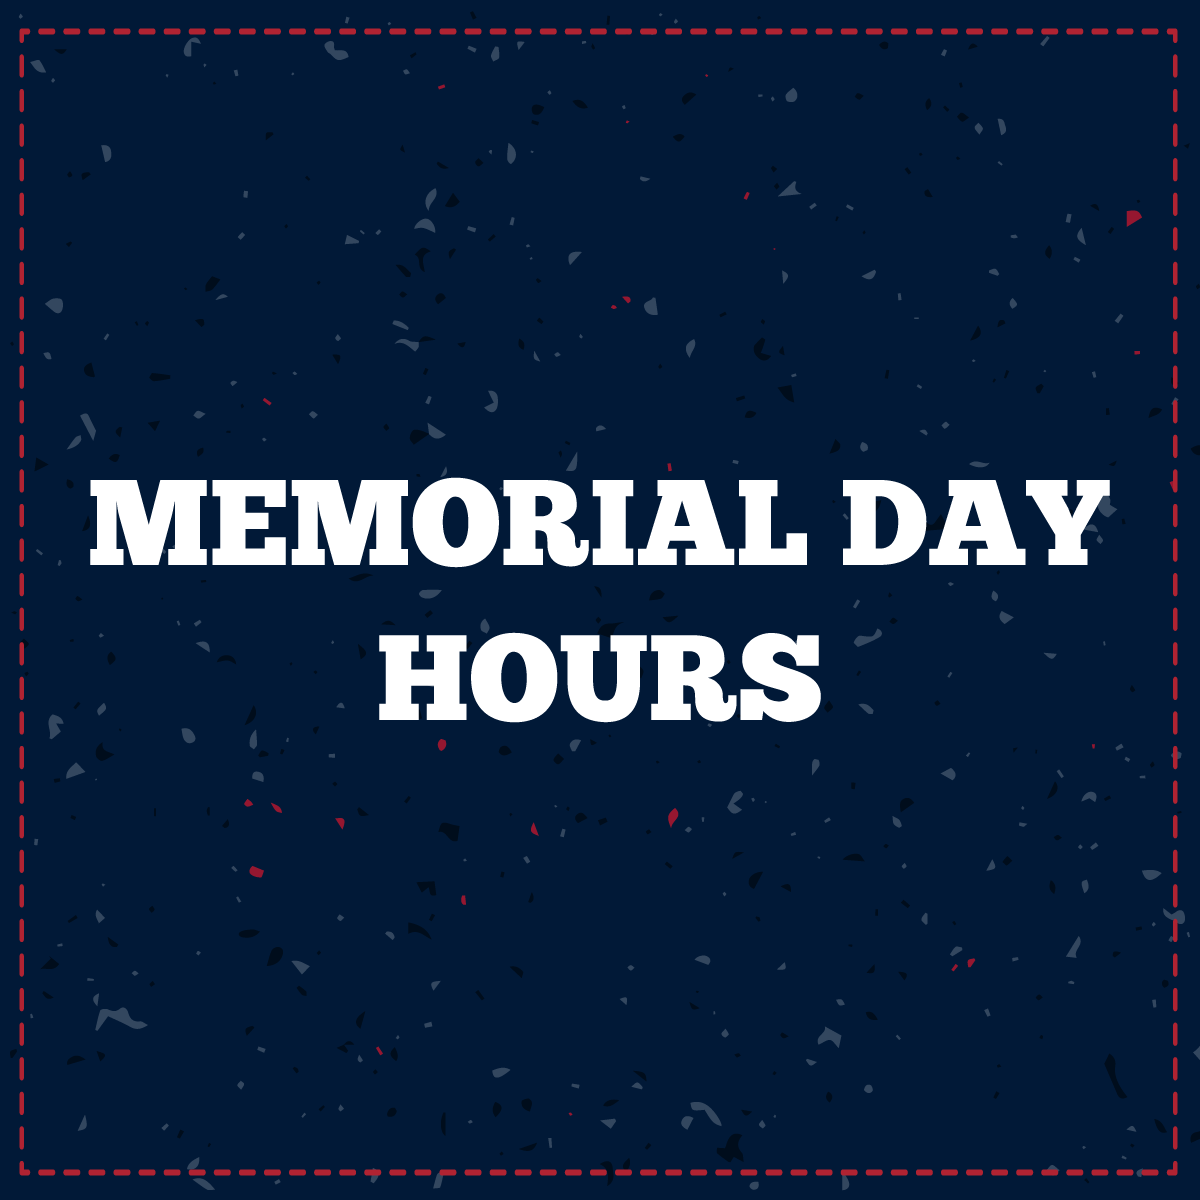 Memorial Day Hours 2019